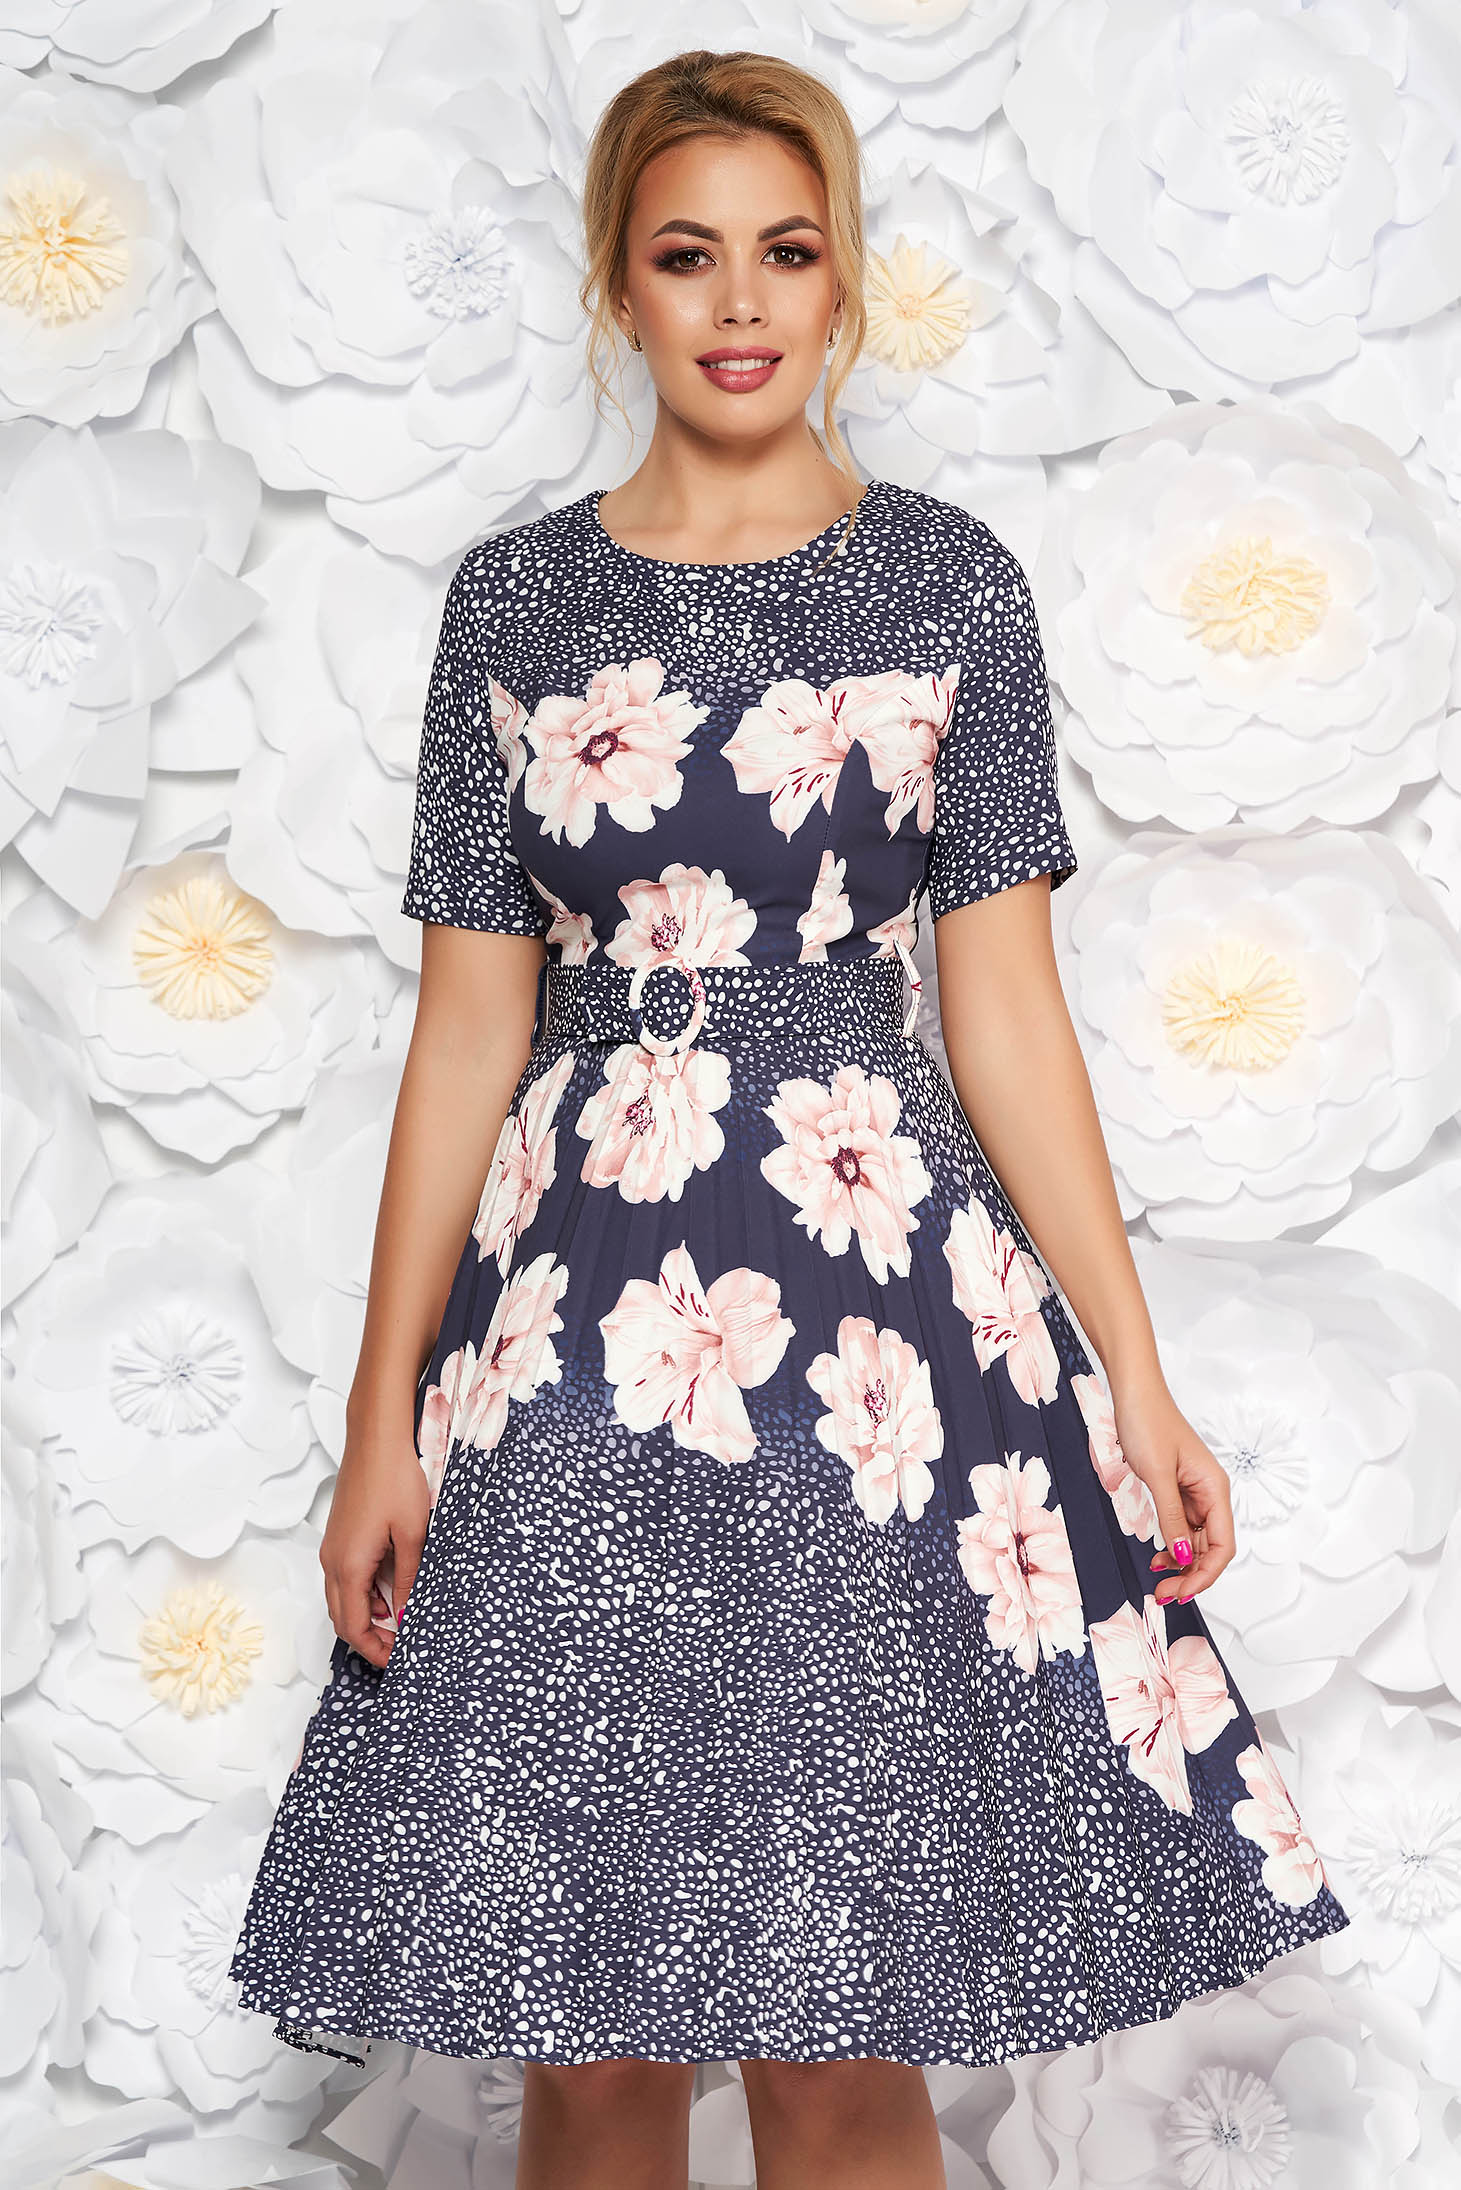 Fofy rosa daily cloche dress slightly elastic fabric with floral print accessorized with belt